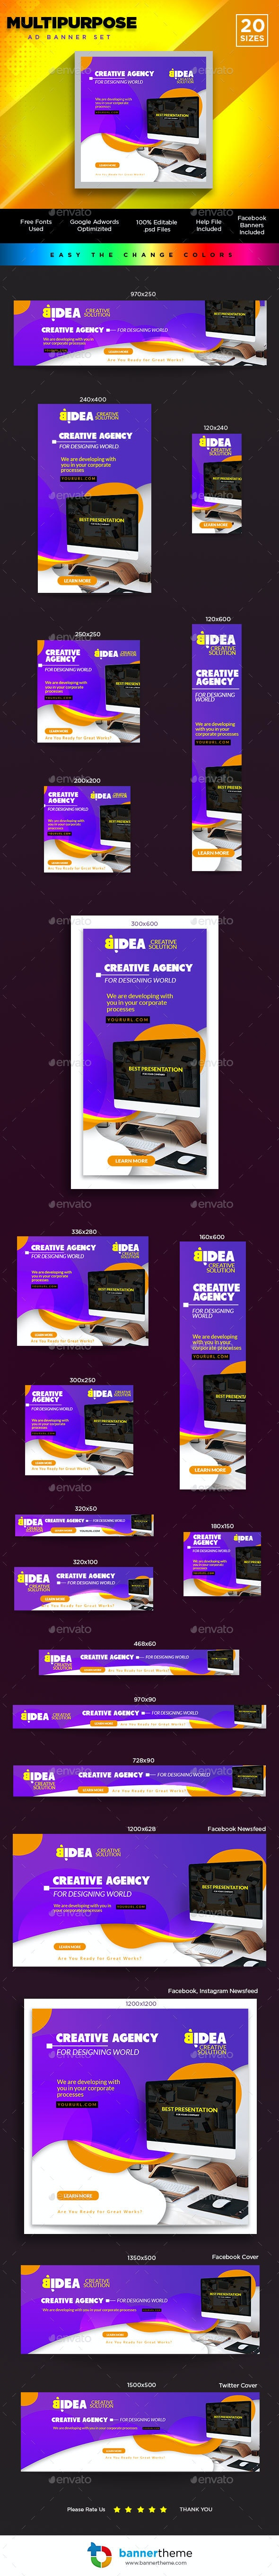 Multipurpose Banner - Banners & Ads Web Elements